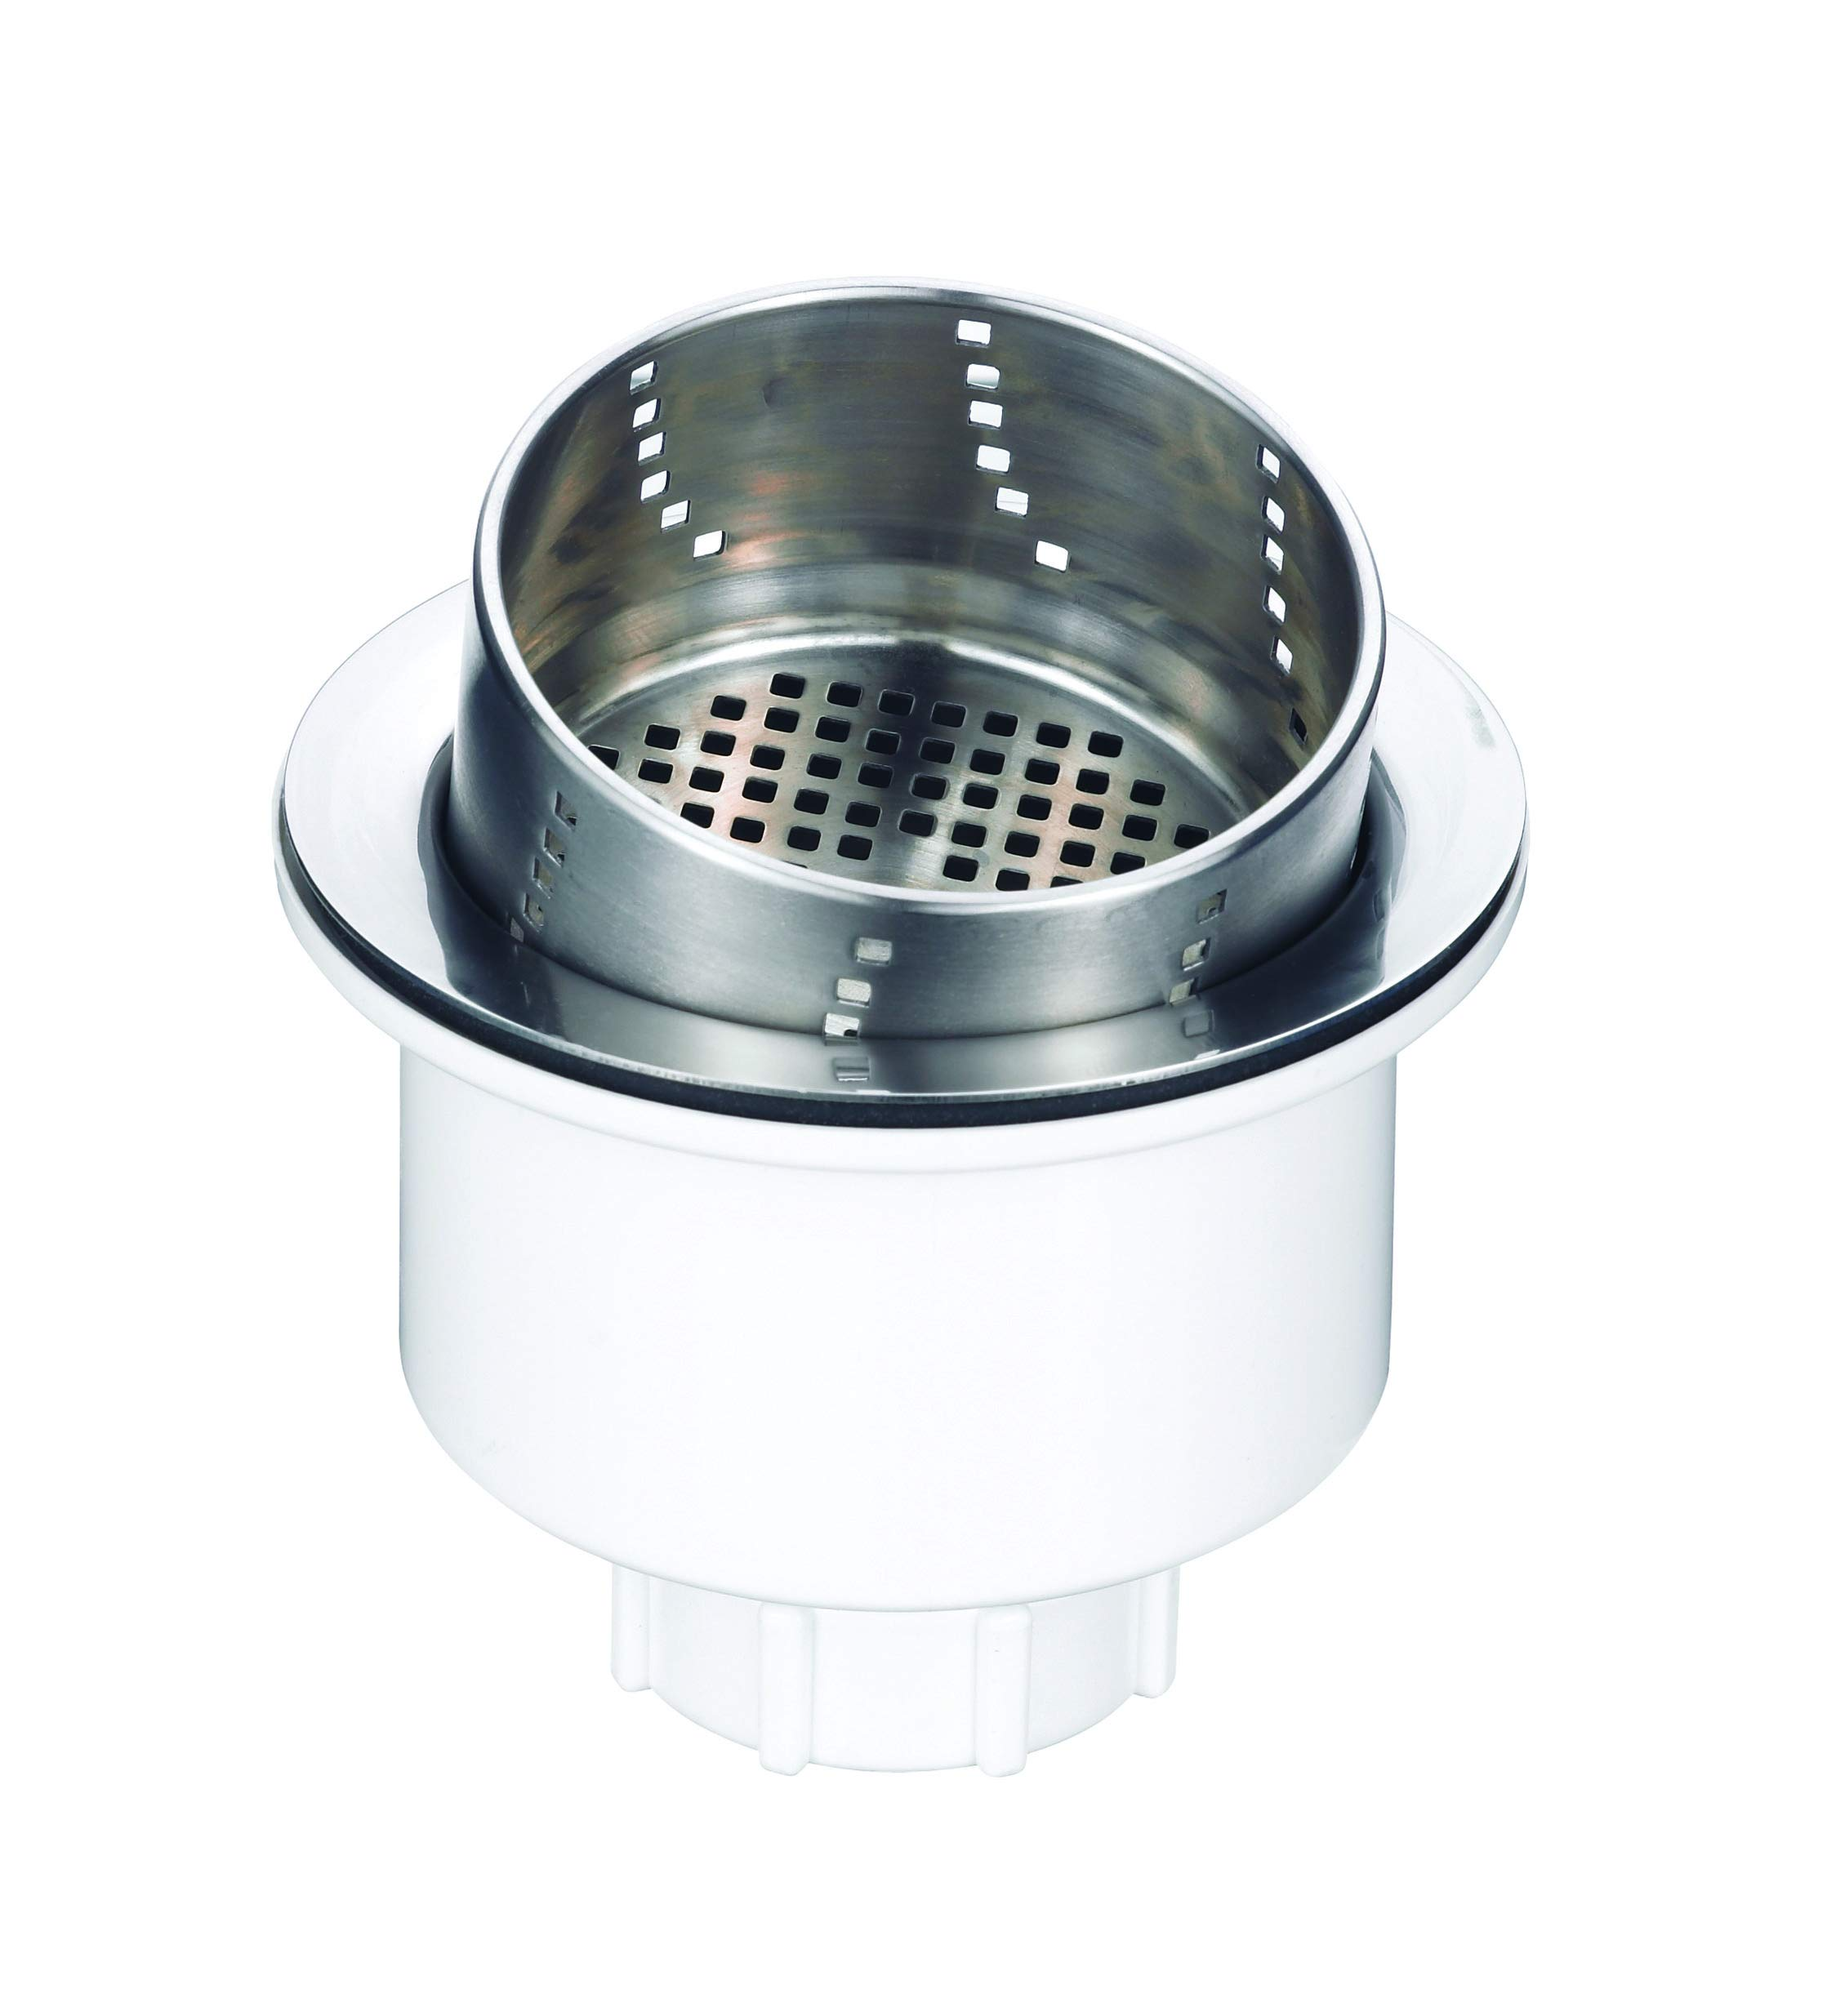 Blanco 441231 Accessories: 3-in-1 Basket Strainer Stainless Steel, 3 in 1,